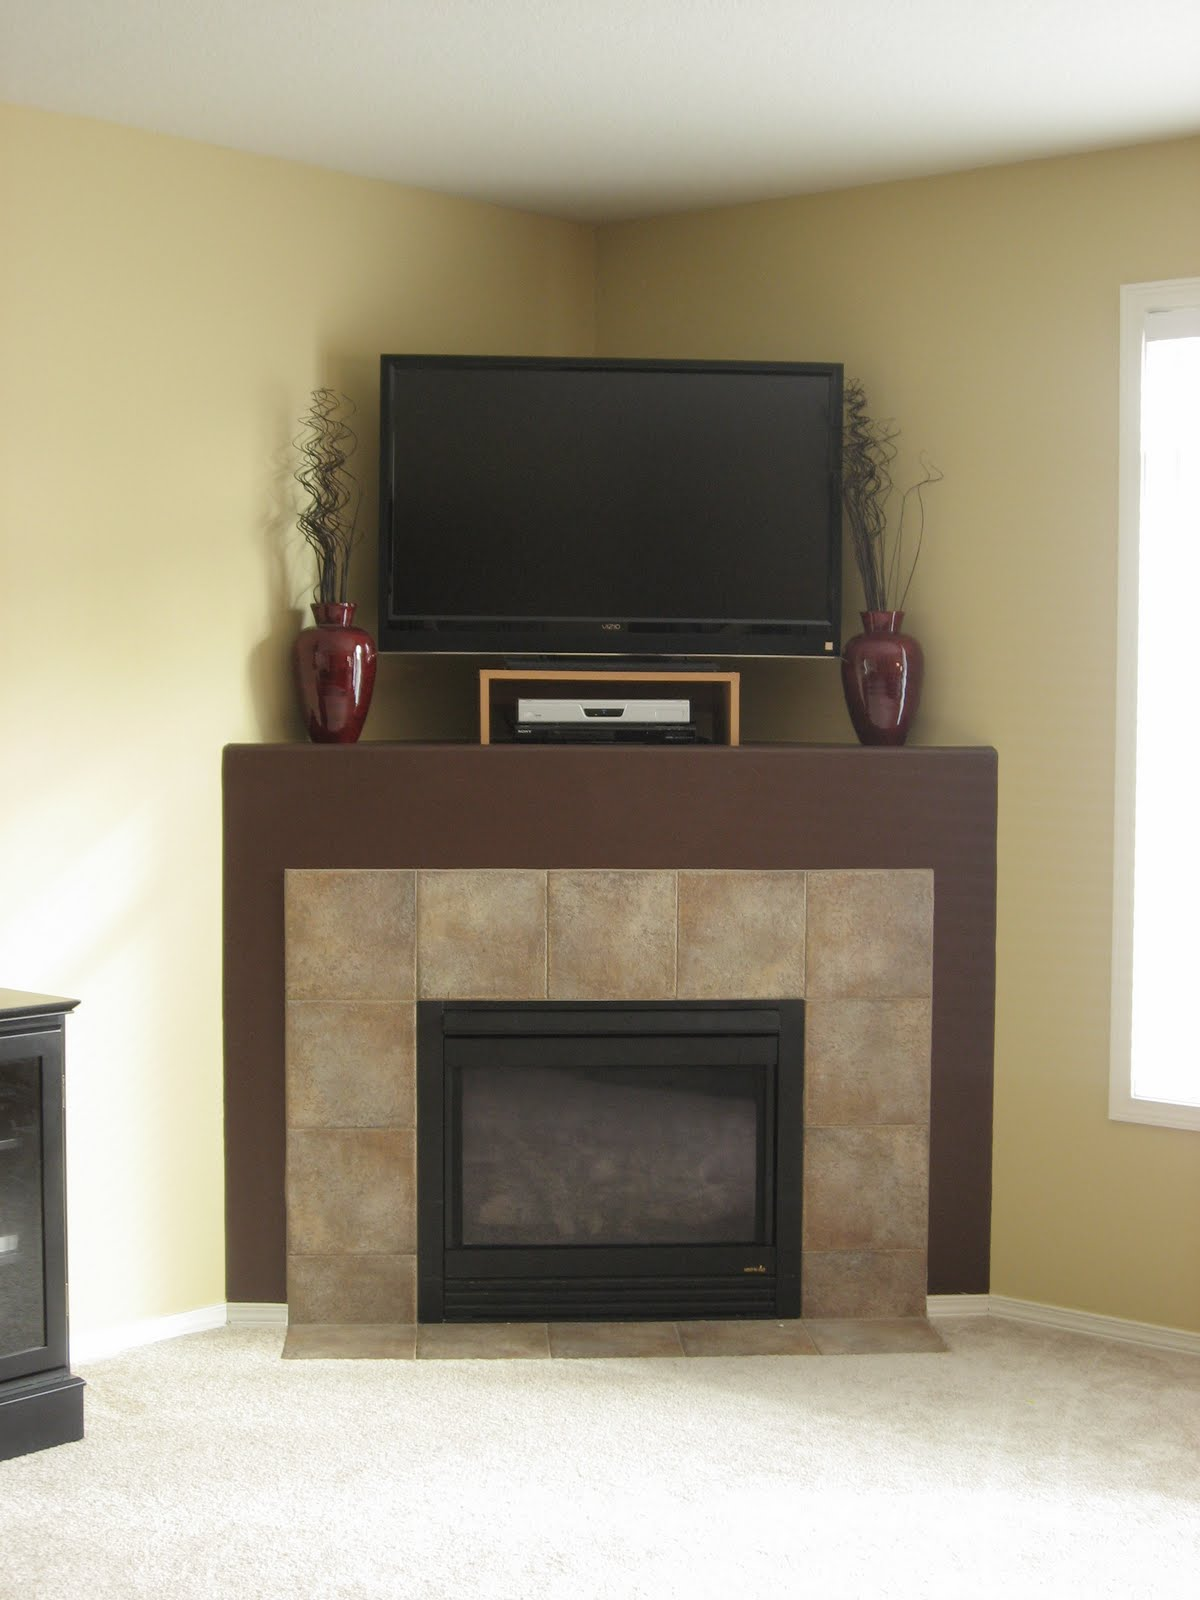 Starter home to Dream home: Fireplace: Part One